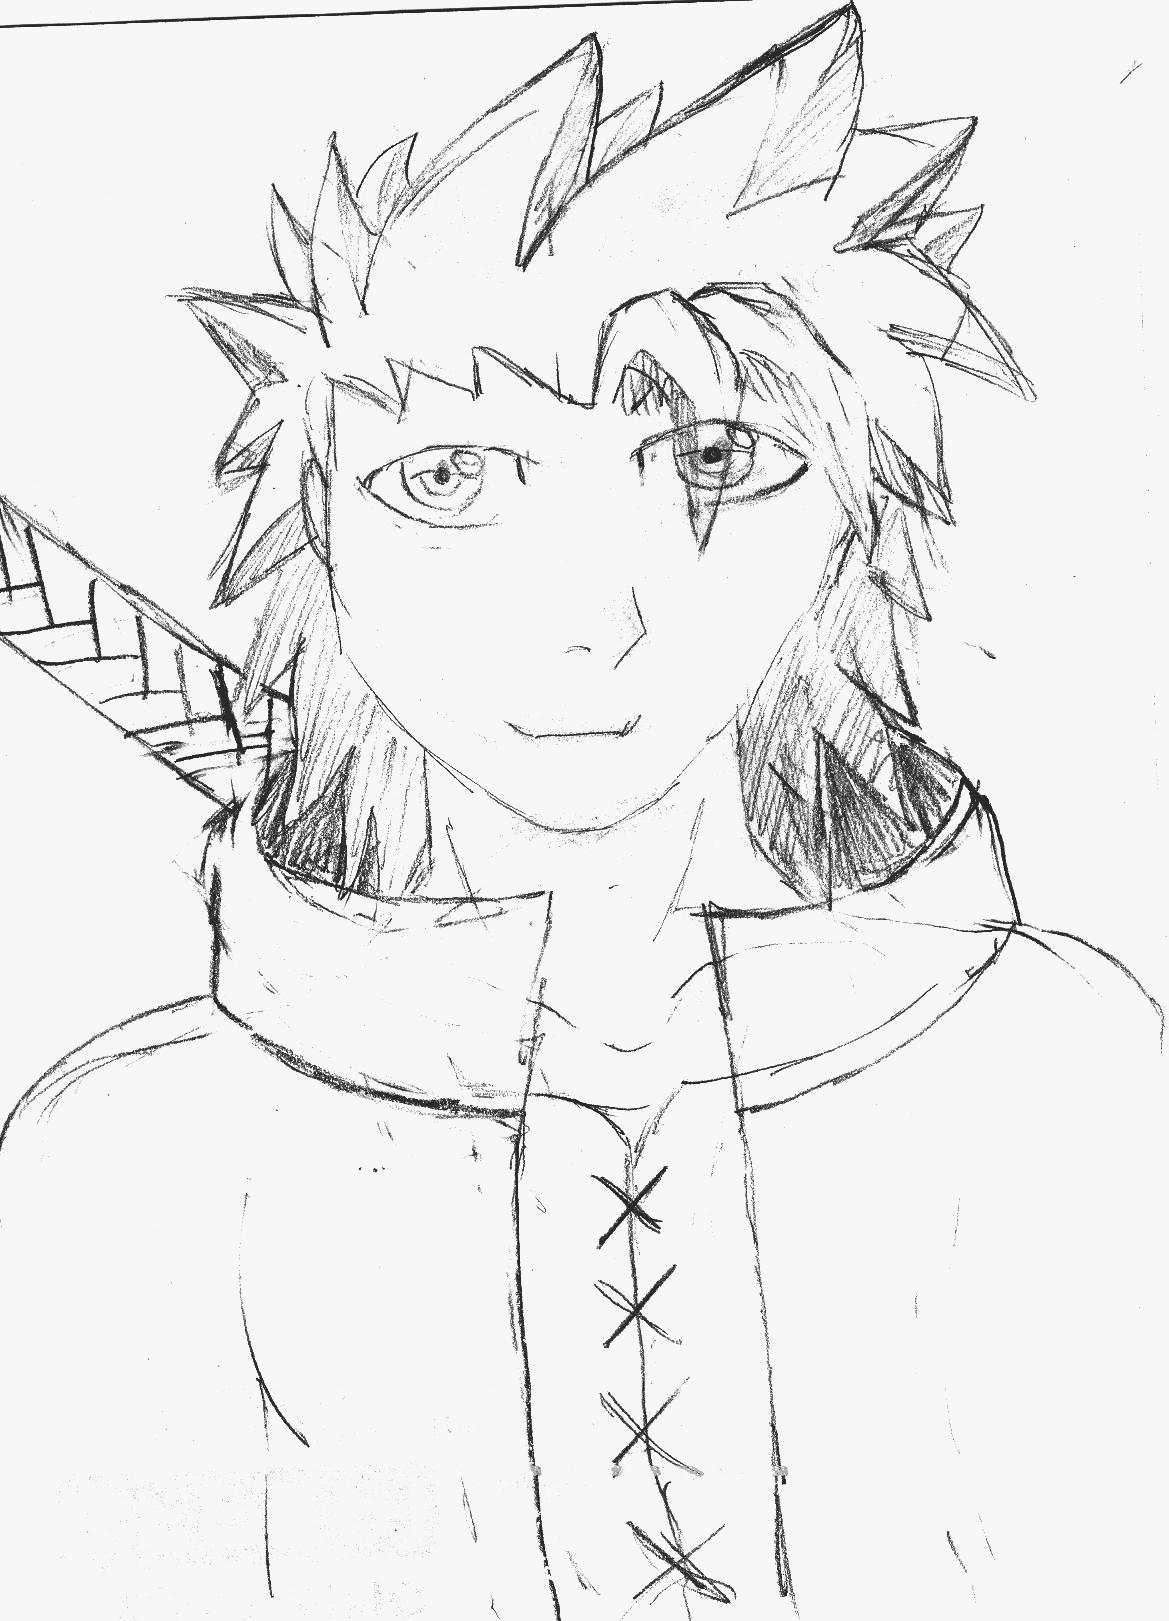 First anime test ^^